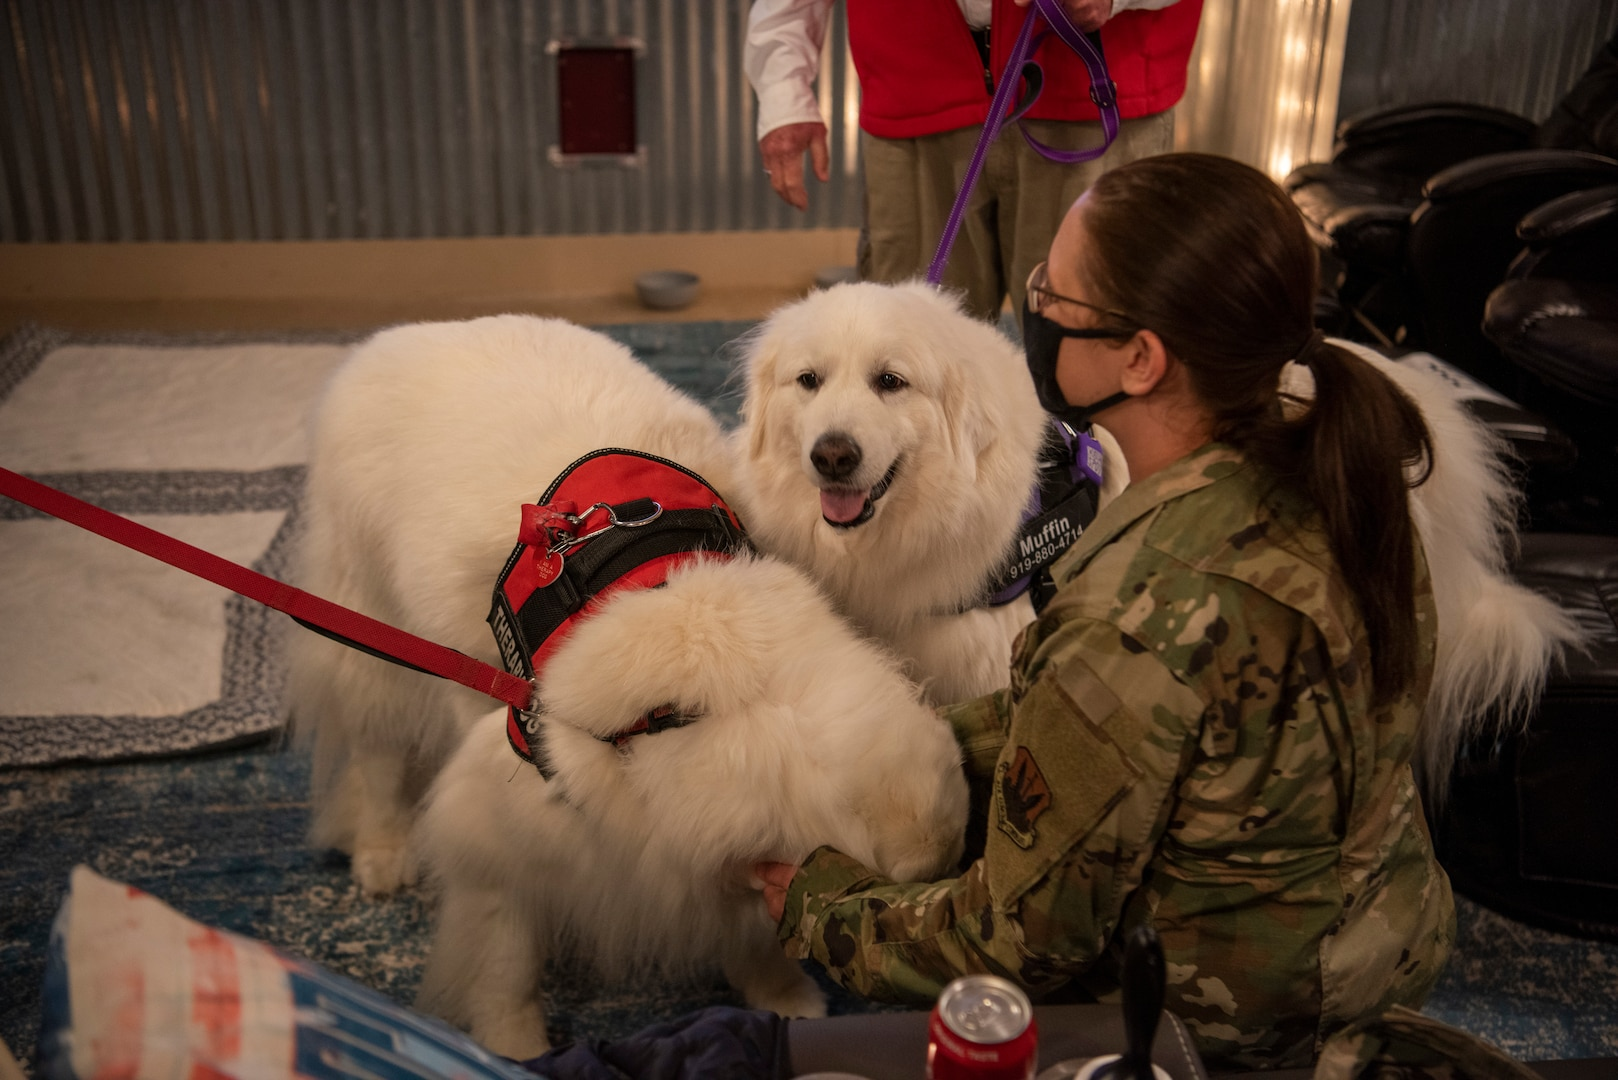 Airman 1st Class Kimberley Barrera, 4th Fighter Wing public affairs specialist, pets therapeutic dogs at the USO of North Carolina reopening at Seymour Johnson Air Force Base, North Carolina, April 01, 2021.